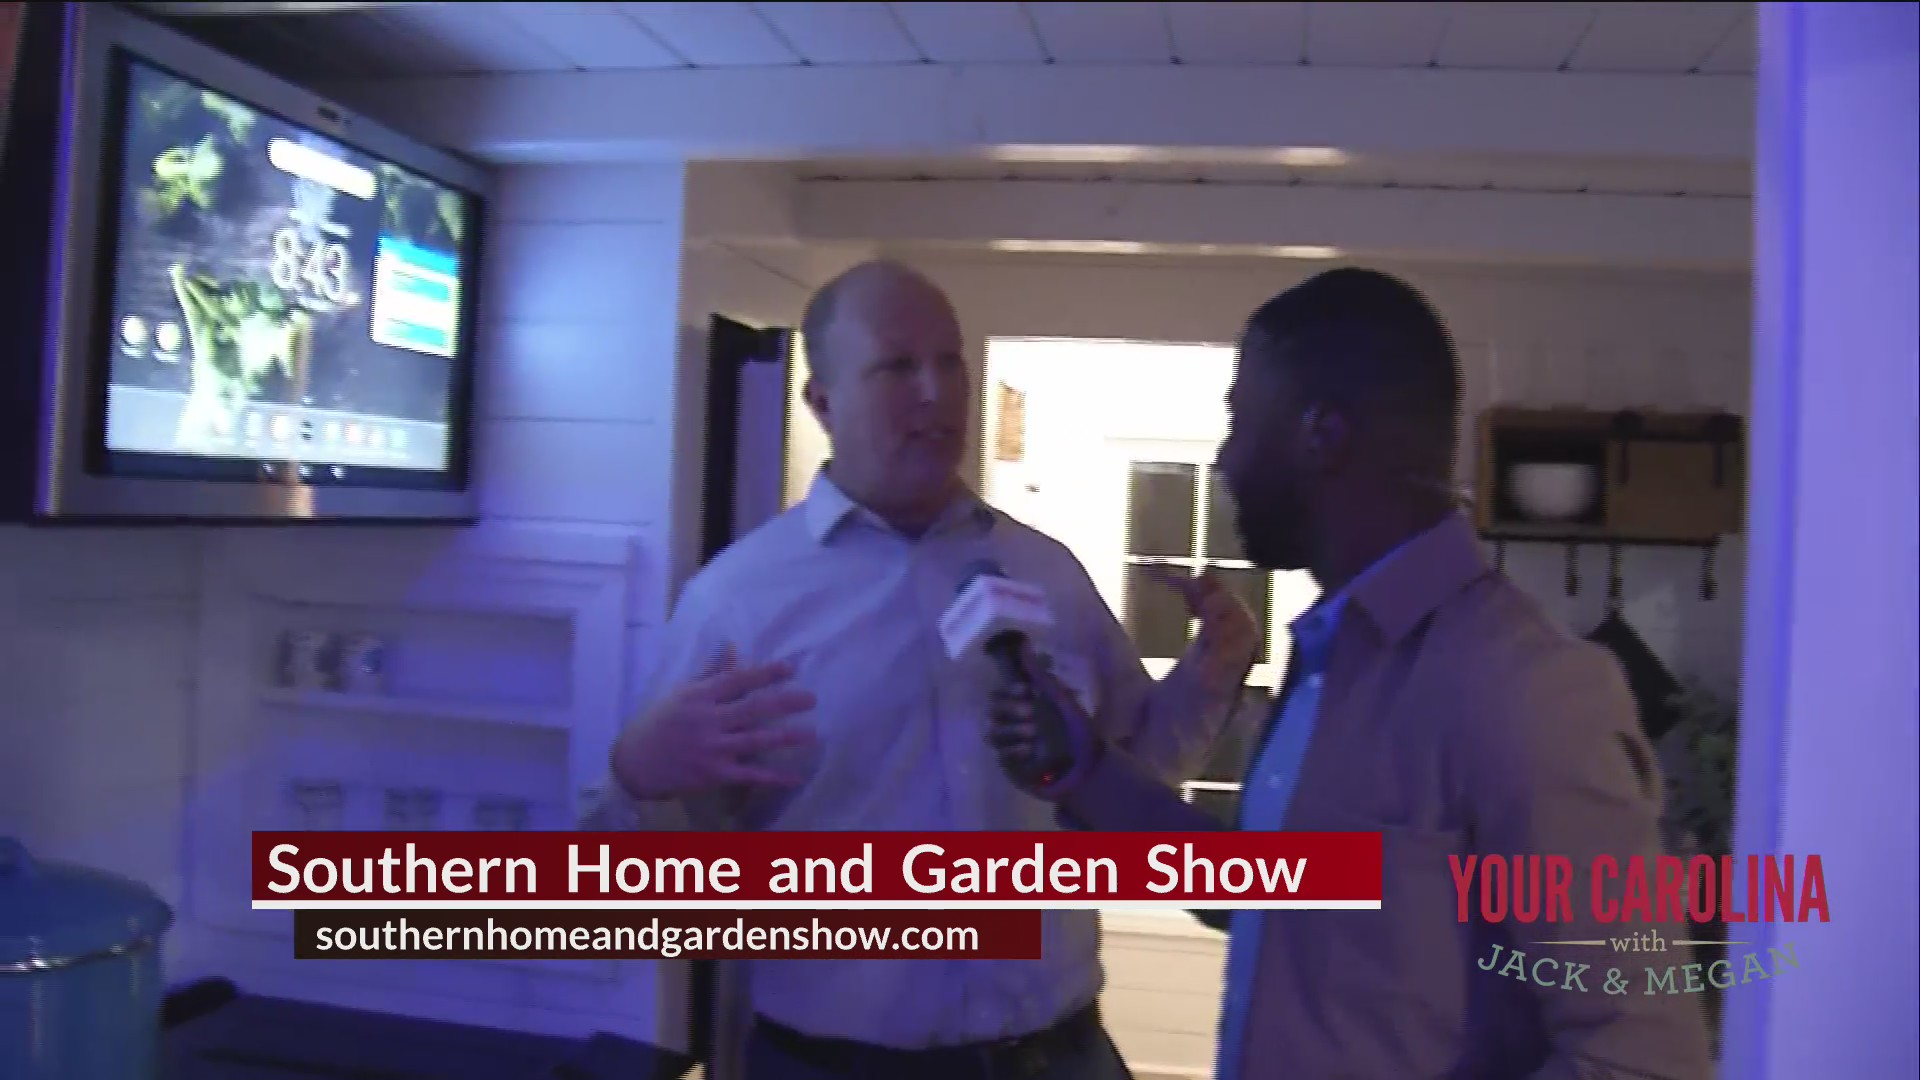 We Check Back In With Jamarcus Live From The Southern Home and Garden Show